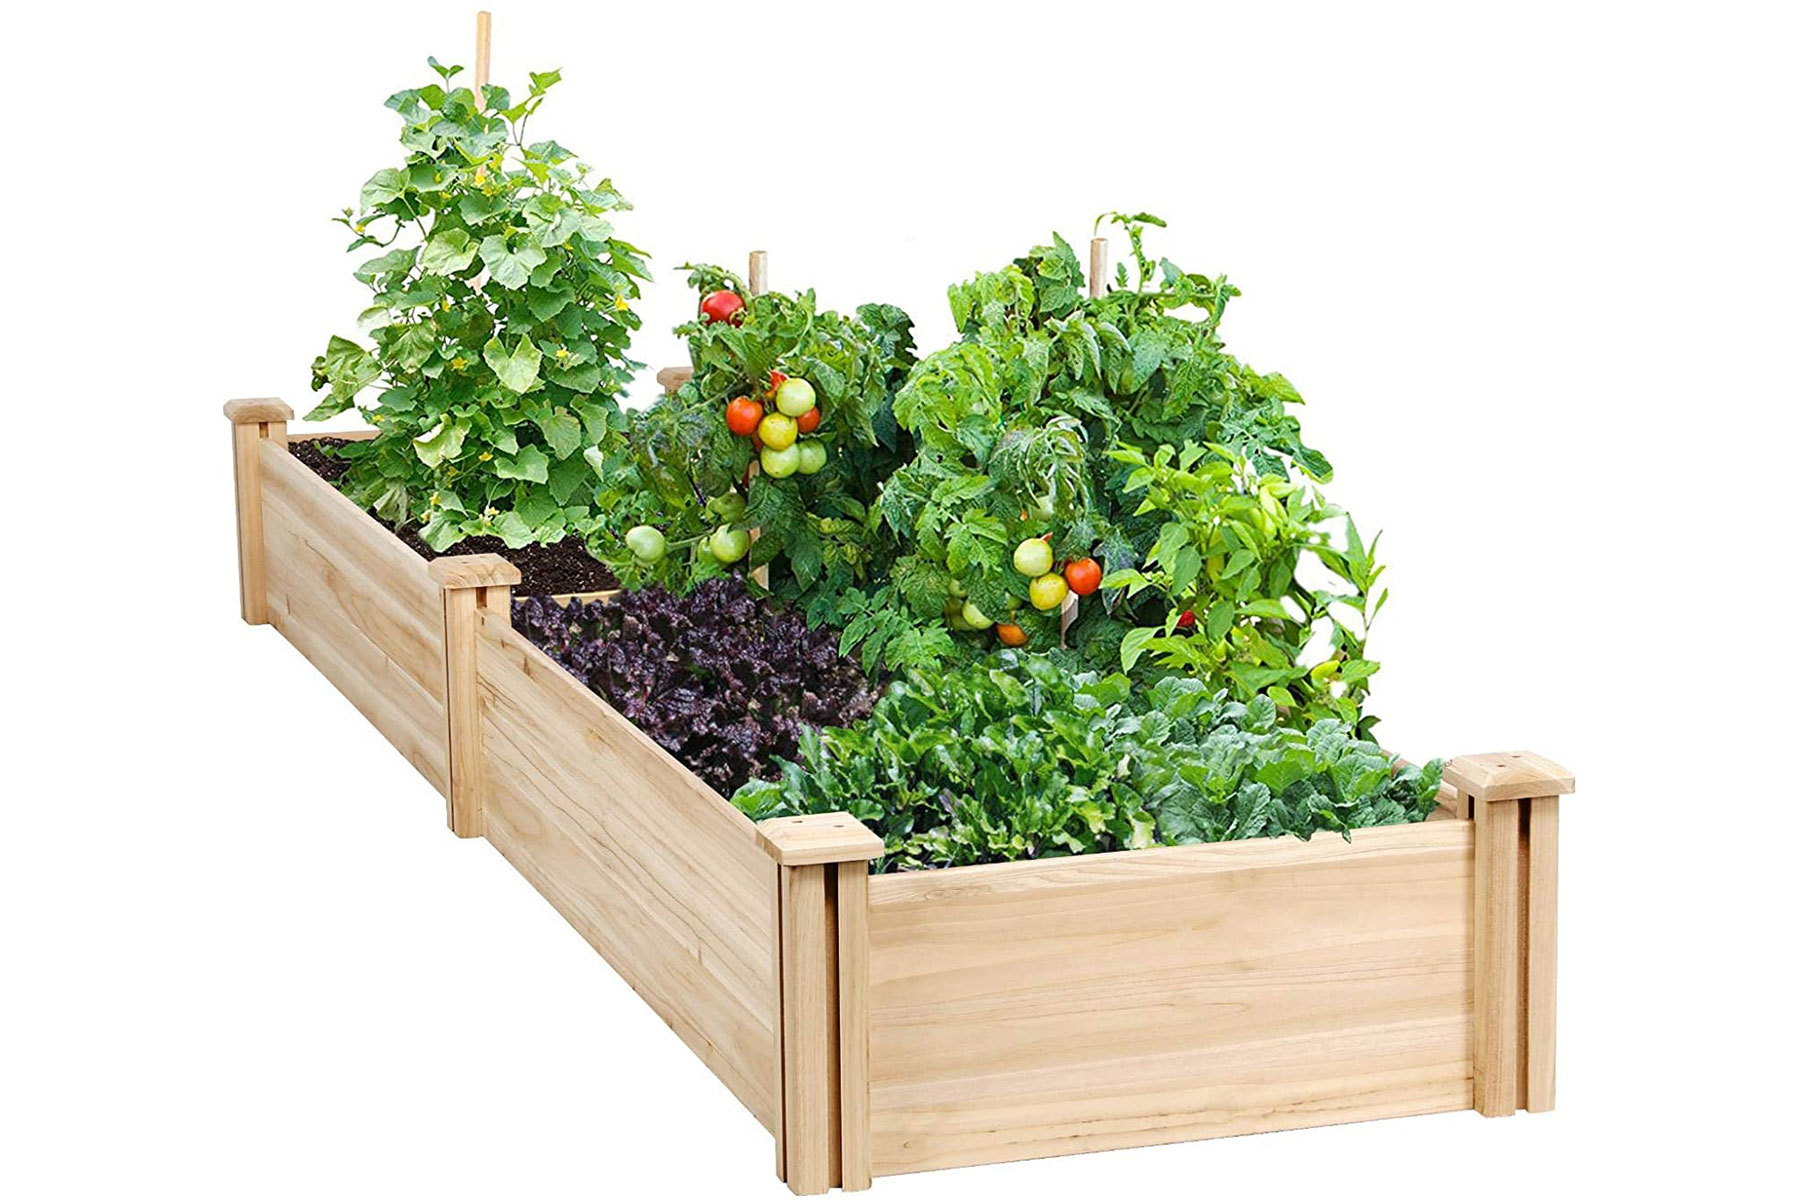 wooden planter box with vegetables